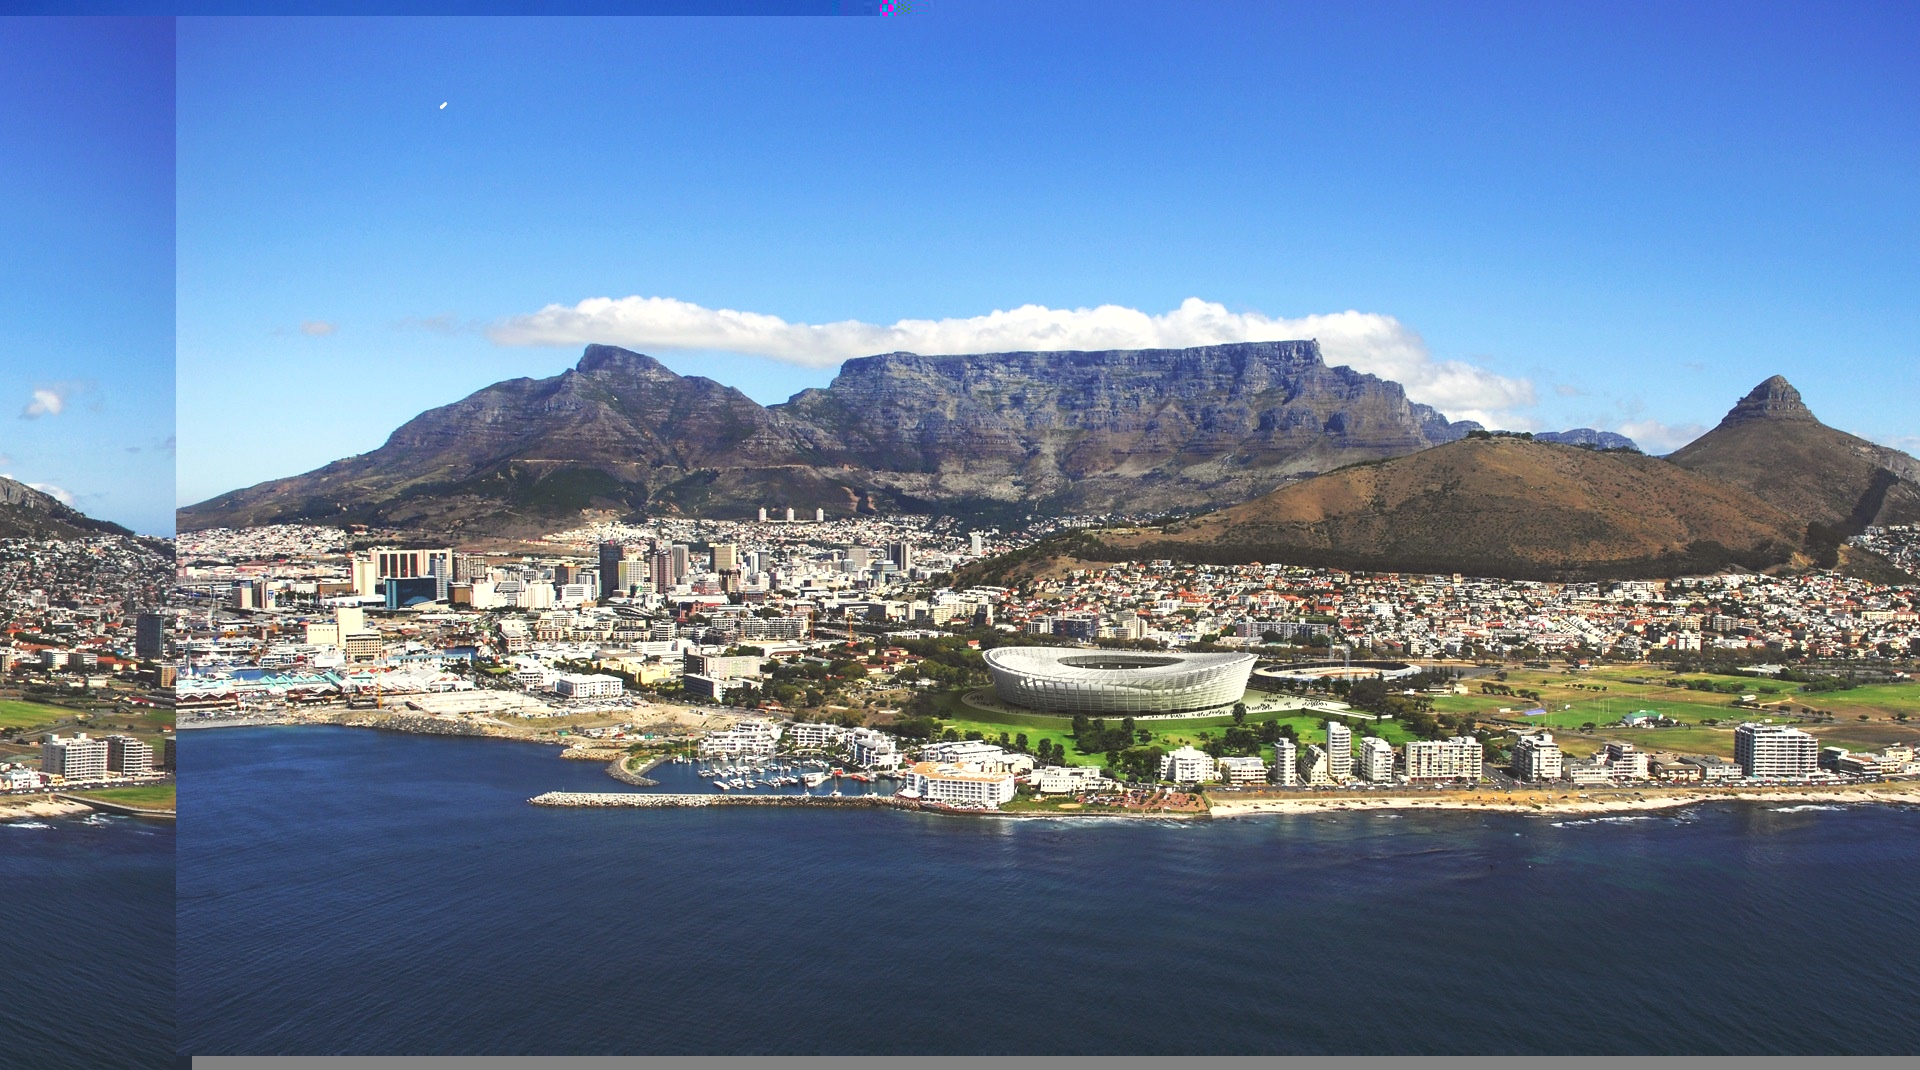 Call for Papers: Annual South Africa Business Research Conference